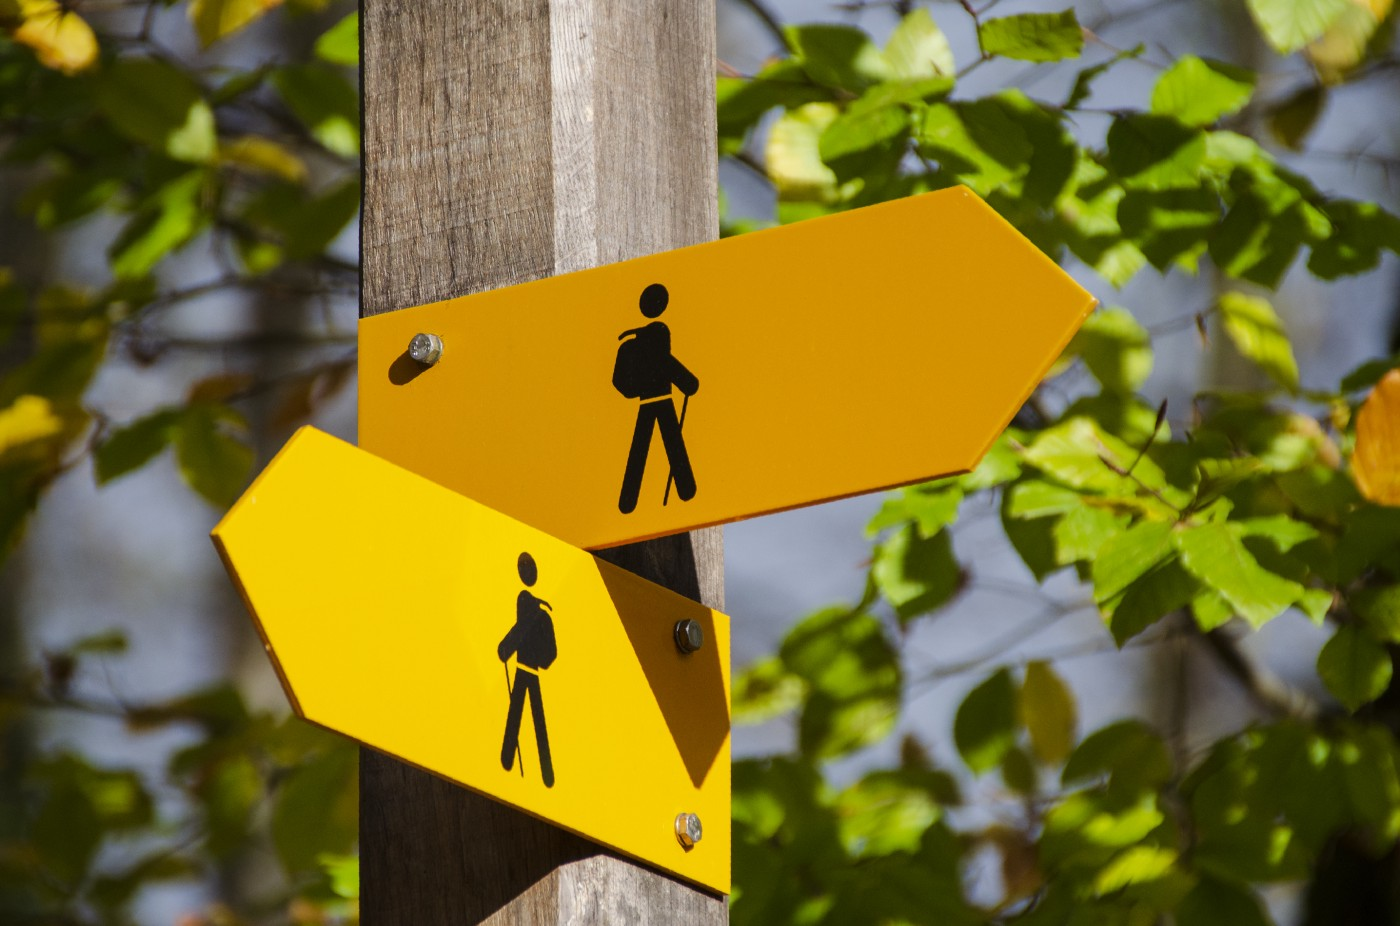 Signs showing people walking in different directions